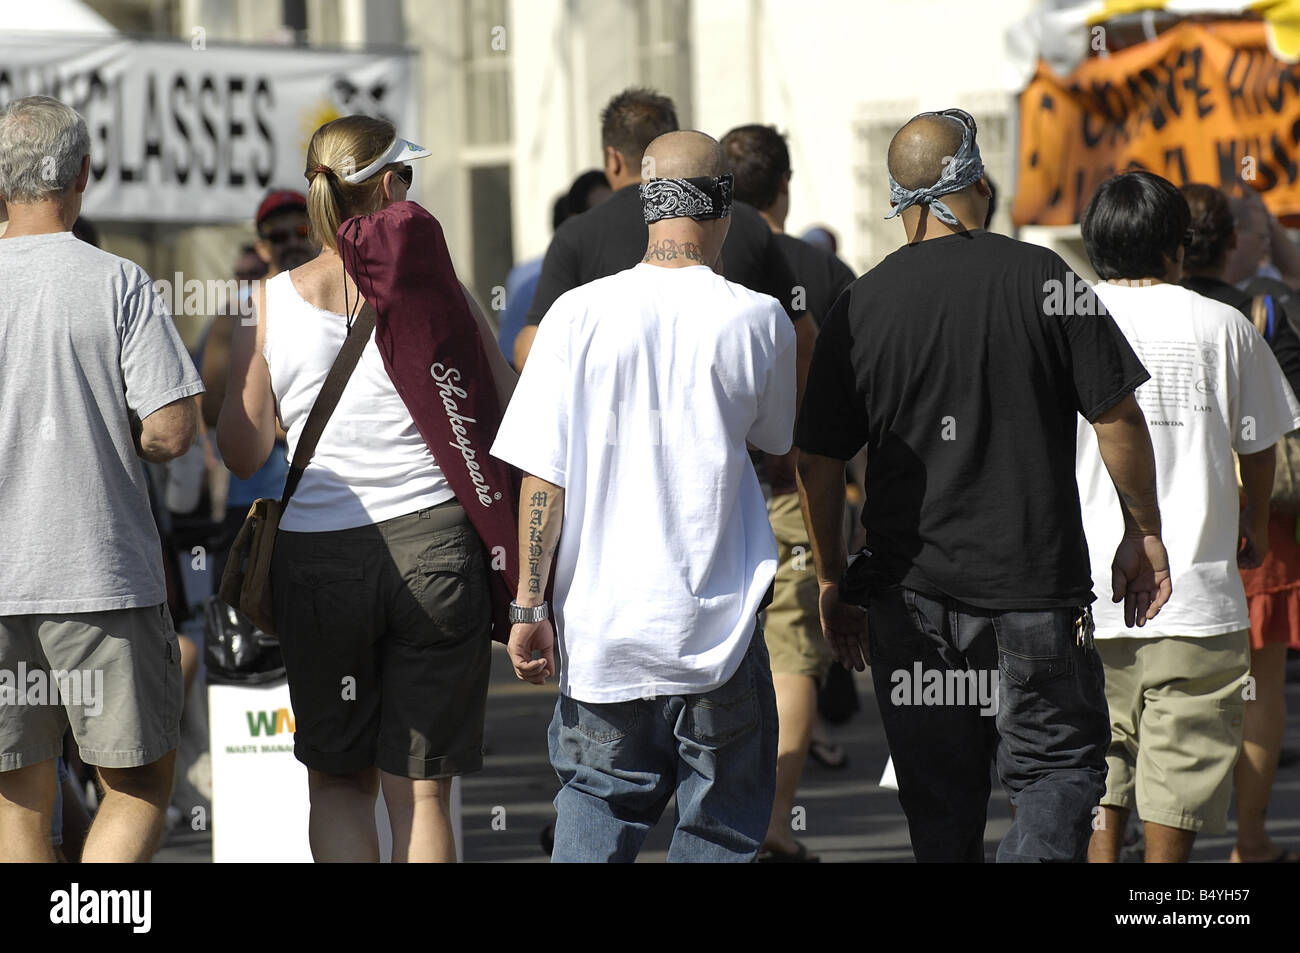 Suspected street gang members walk through a crowded street fair - Stock Image